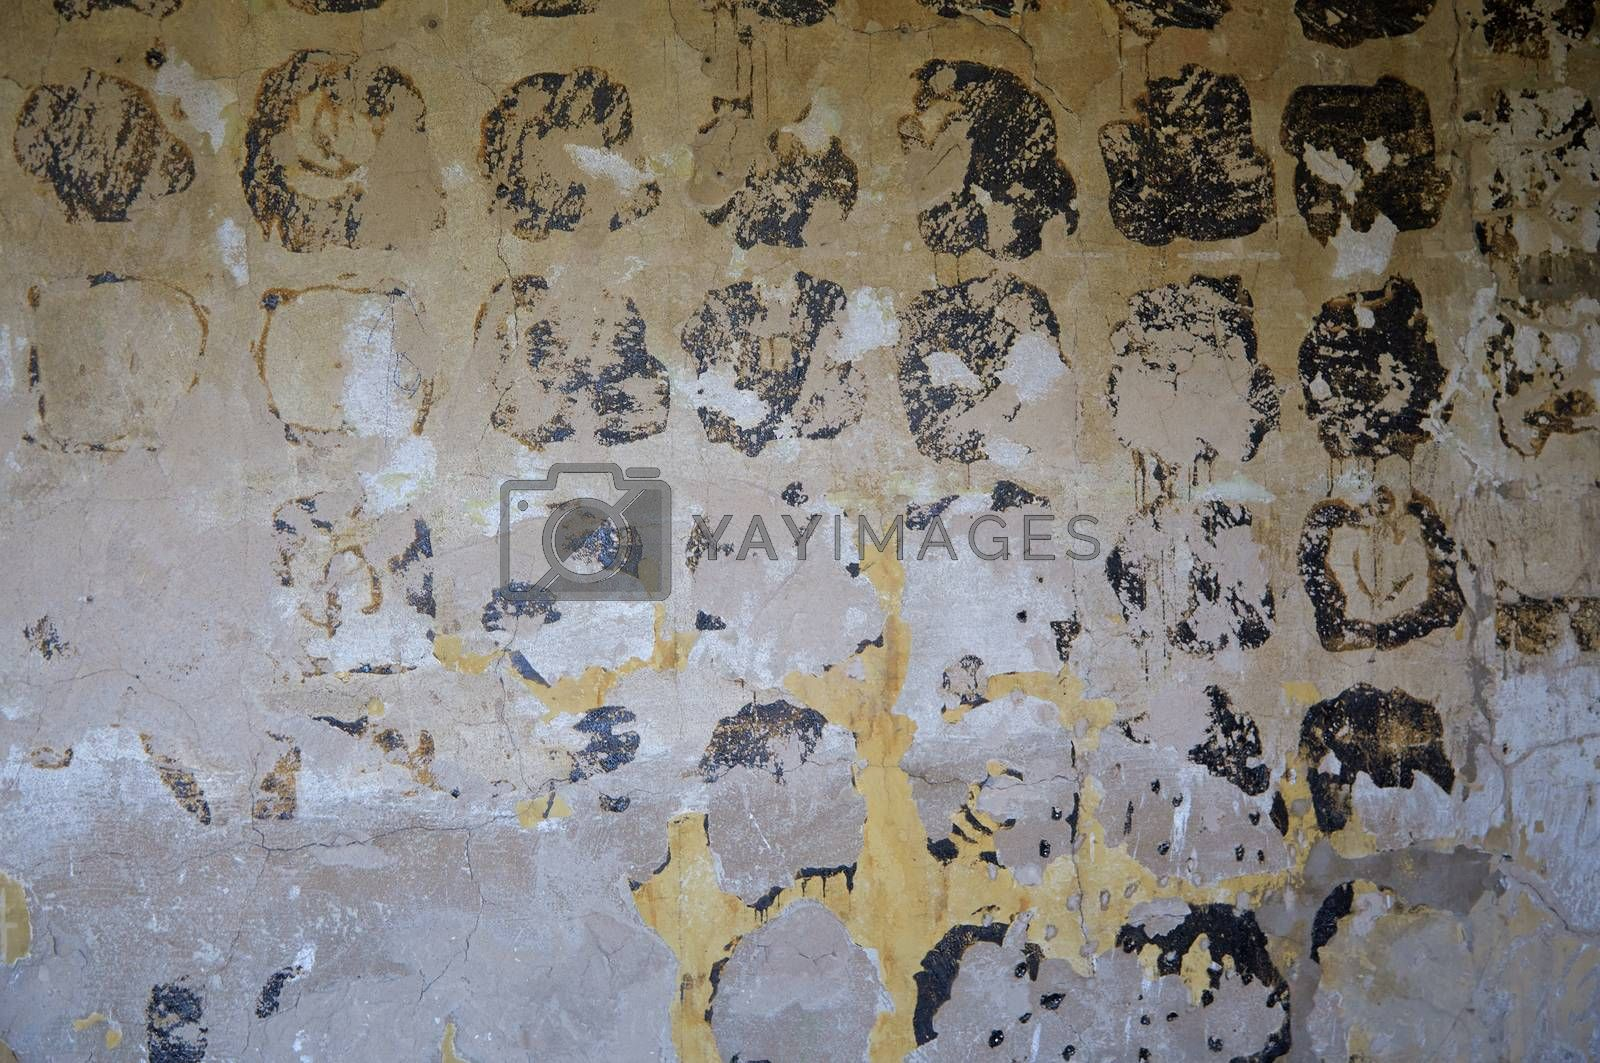 Royalty free image of Old wall by Novic